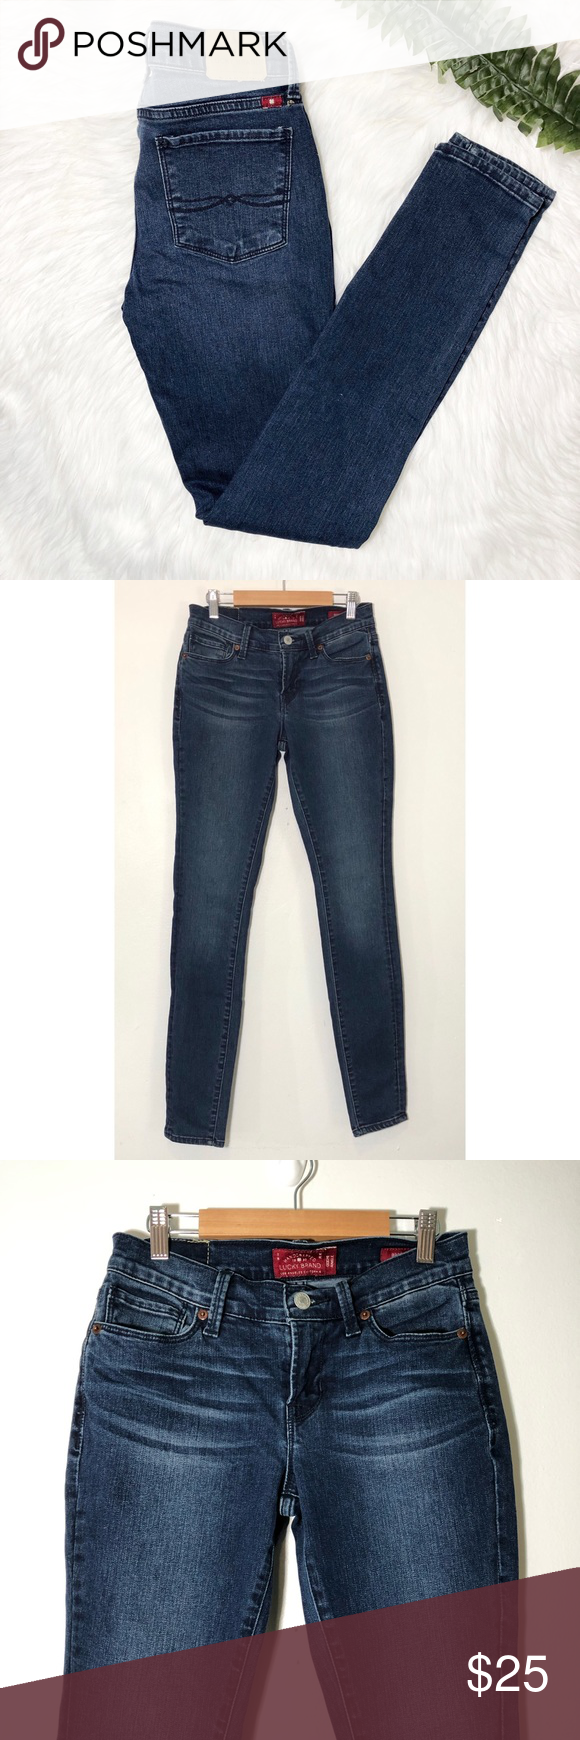 Lucky Brand Brooklyn Skinny Jeans Size 00/24 Approximate